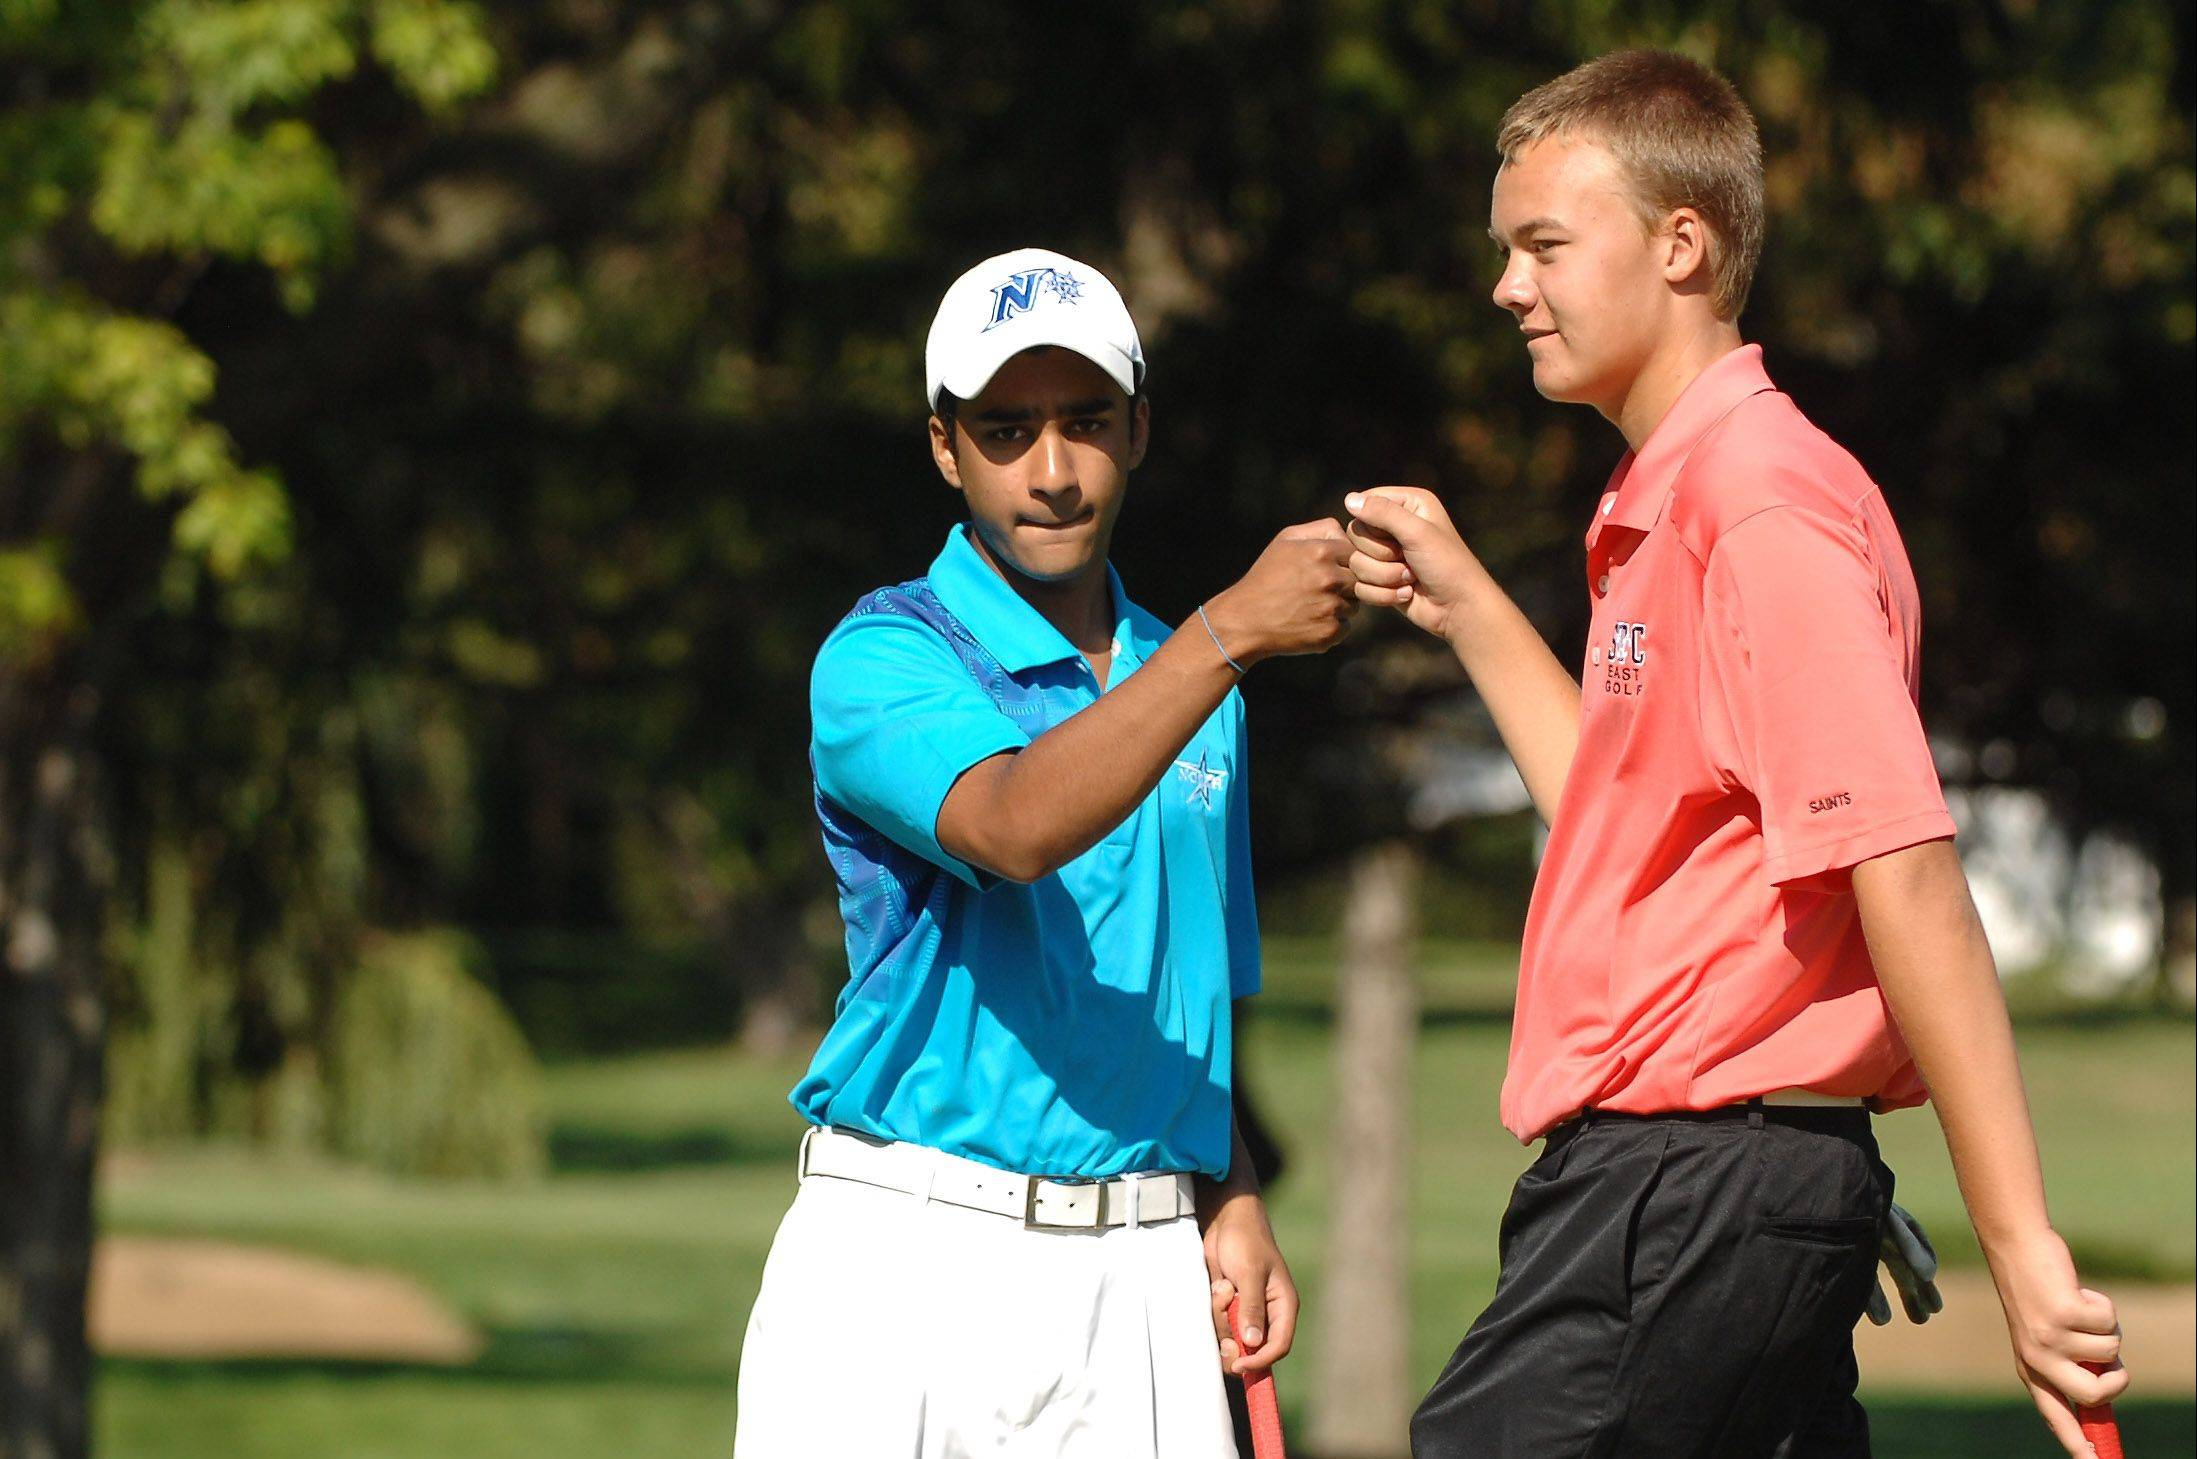 St. Charles North's Raghav Cherala gets a fist bump from teammate Mick Vyzral of St. Charles East after sinking a putt.